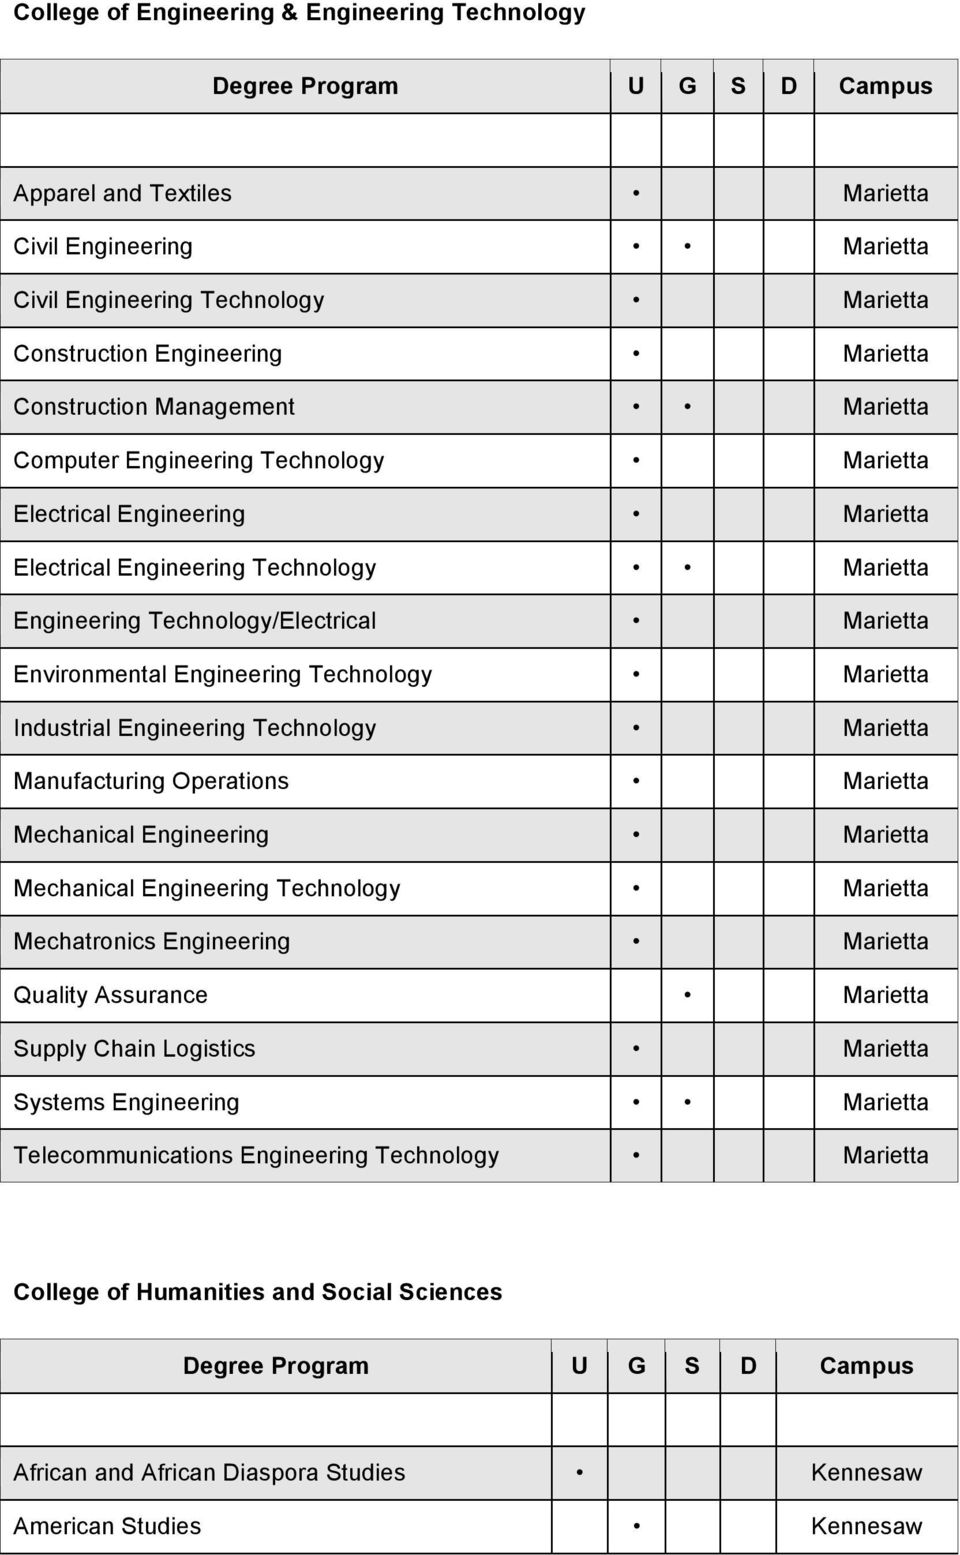 Engineering Technology Marietta Industrial Engineering Technology Marietta Manufacturing Operations Marietta Mechanical Engineering Marietta Mechanical Engineering Technology Marietta Mechatronics